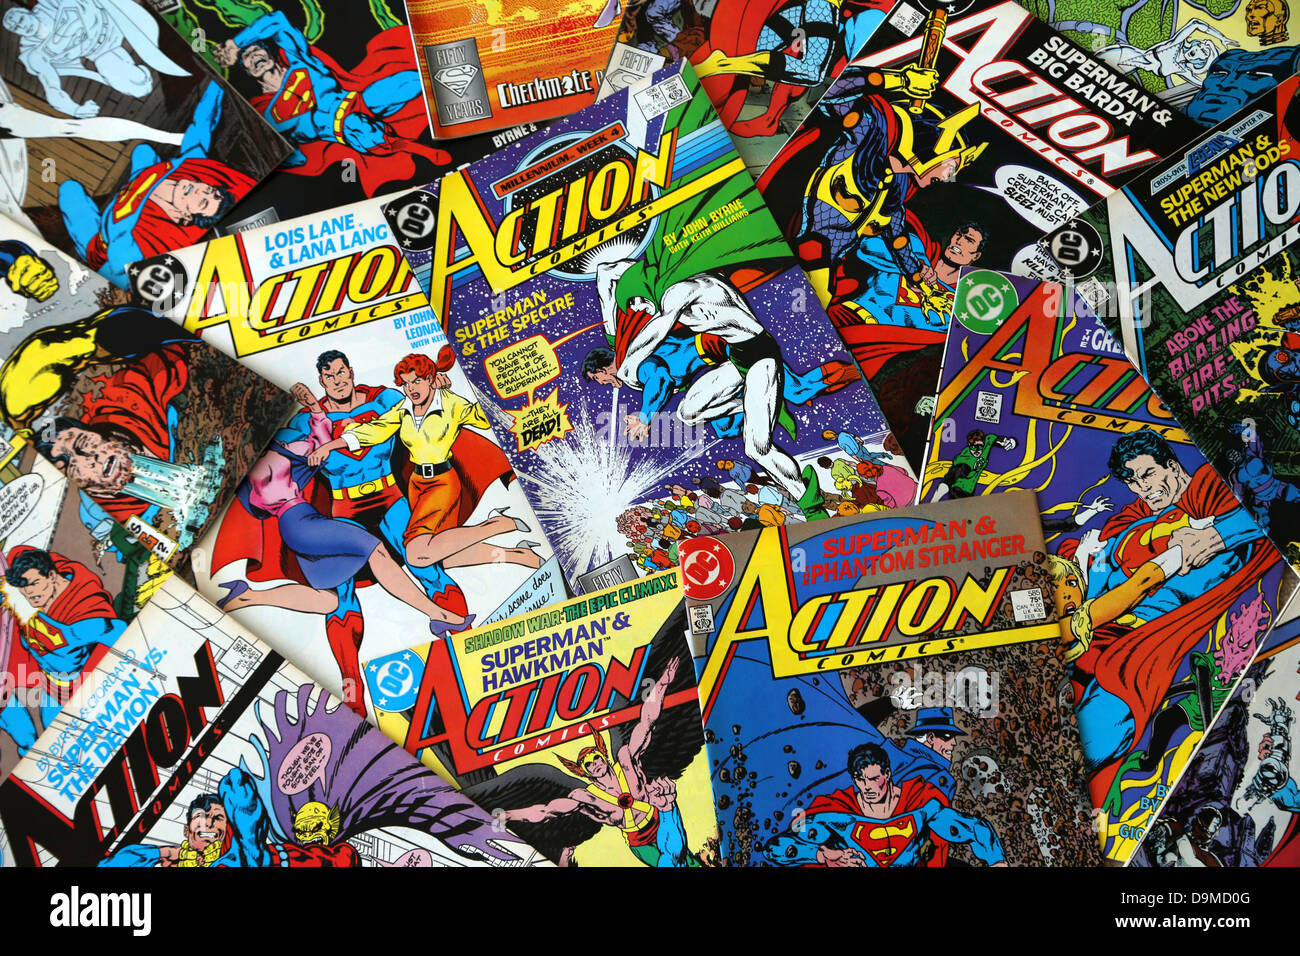 A Collection Of DC Comics Superman Action Comics - Stock Image